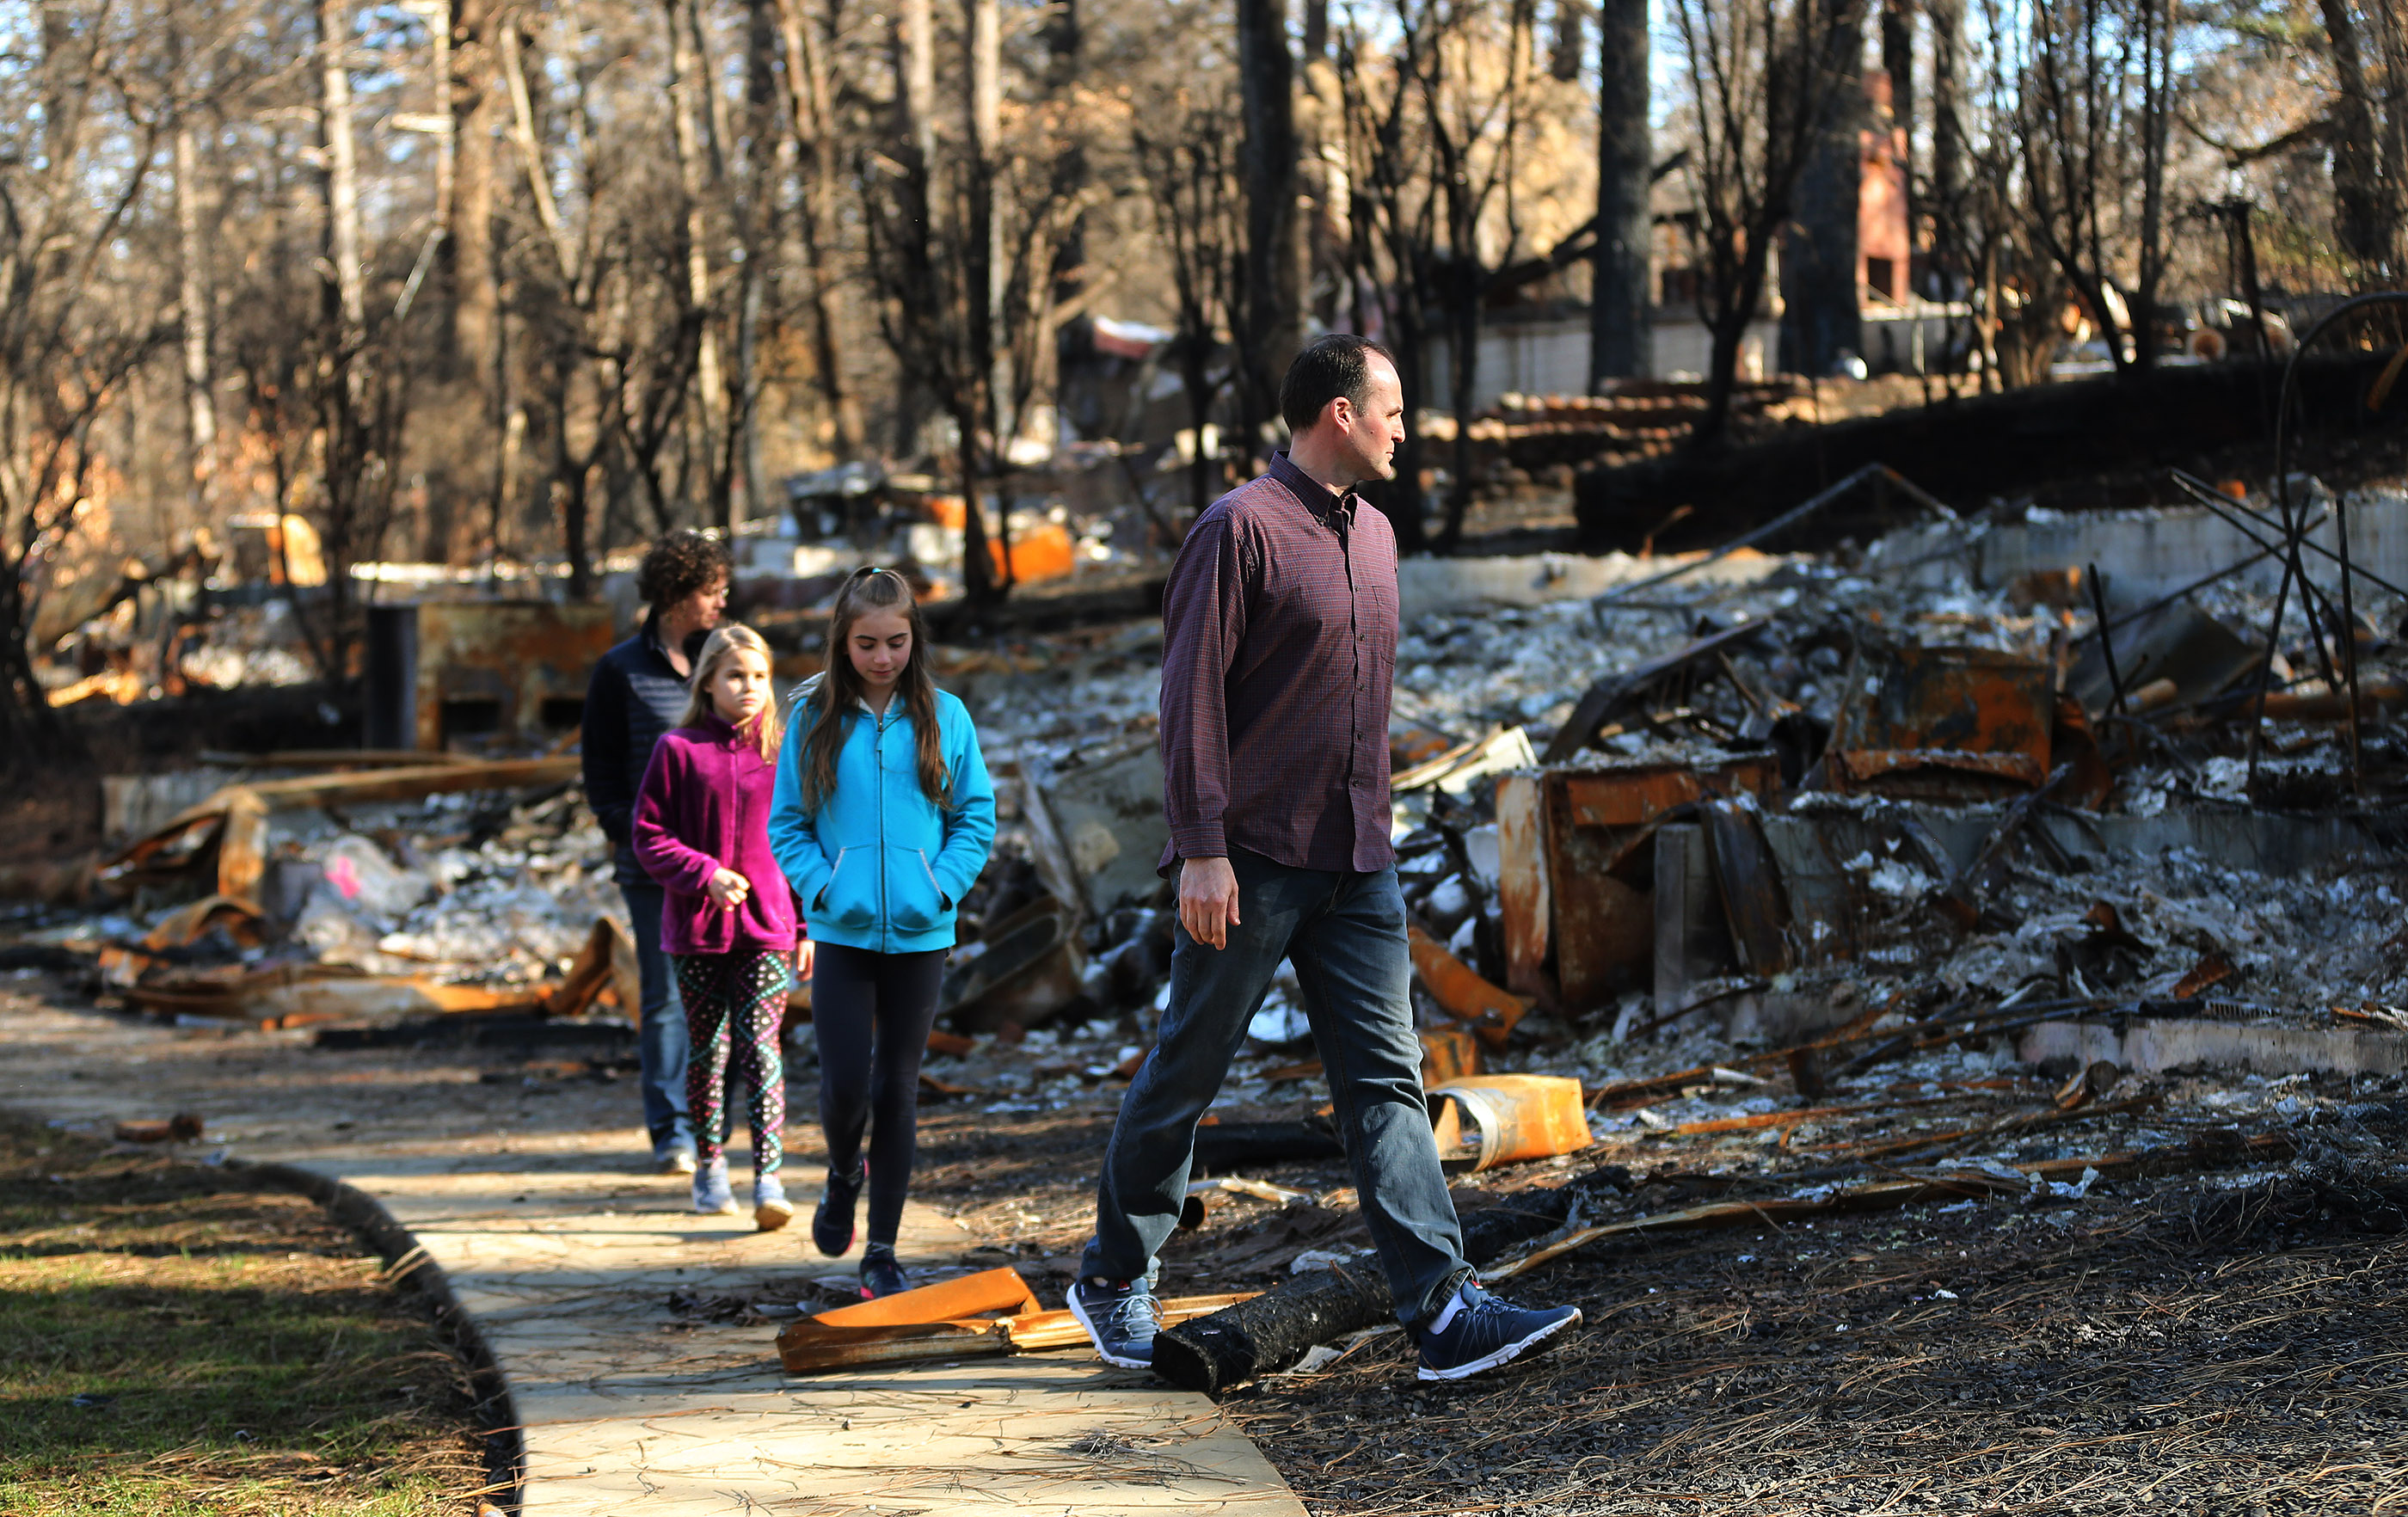 Jeremy and Brynn Chatfield and their children survey their destroyed home in Paradise, California, on Saturday, Jan. 12, 2019, two months after the Camp Fire destroyed more than 18,000 homes and businesses.